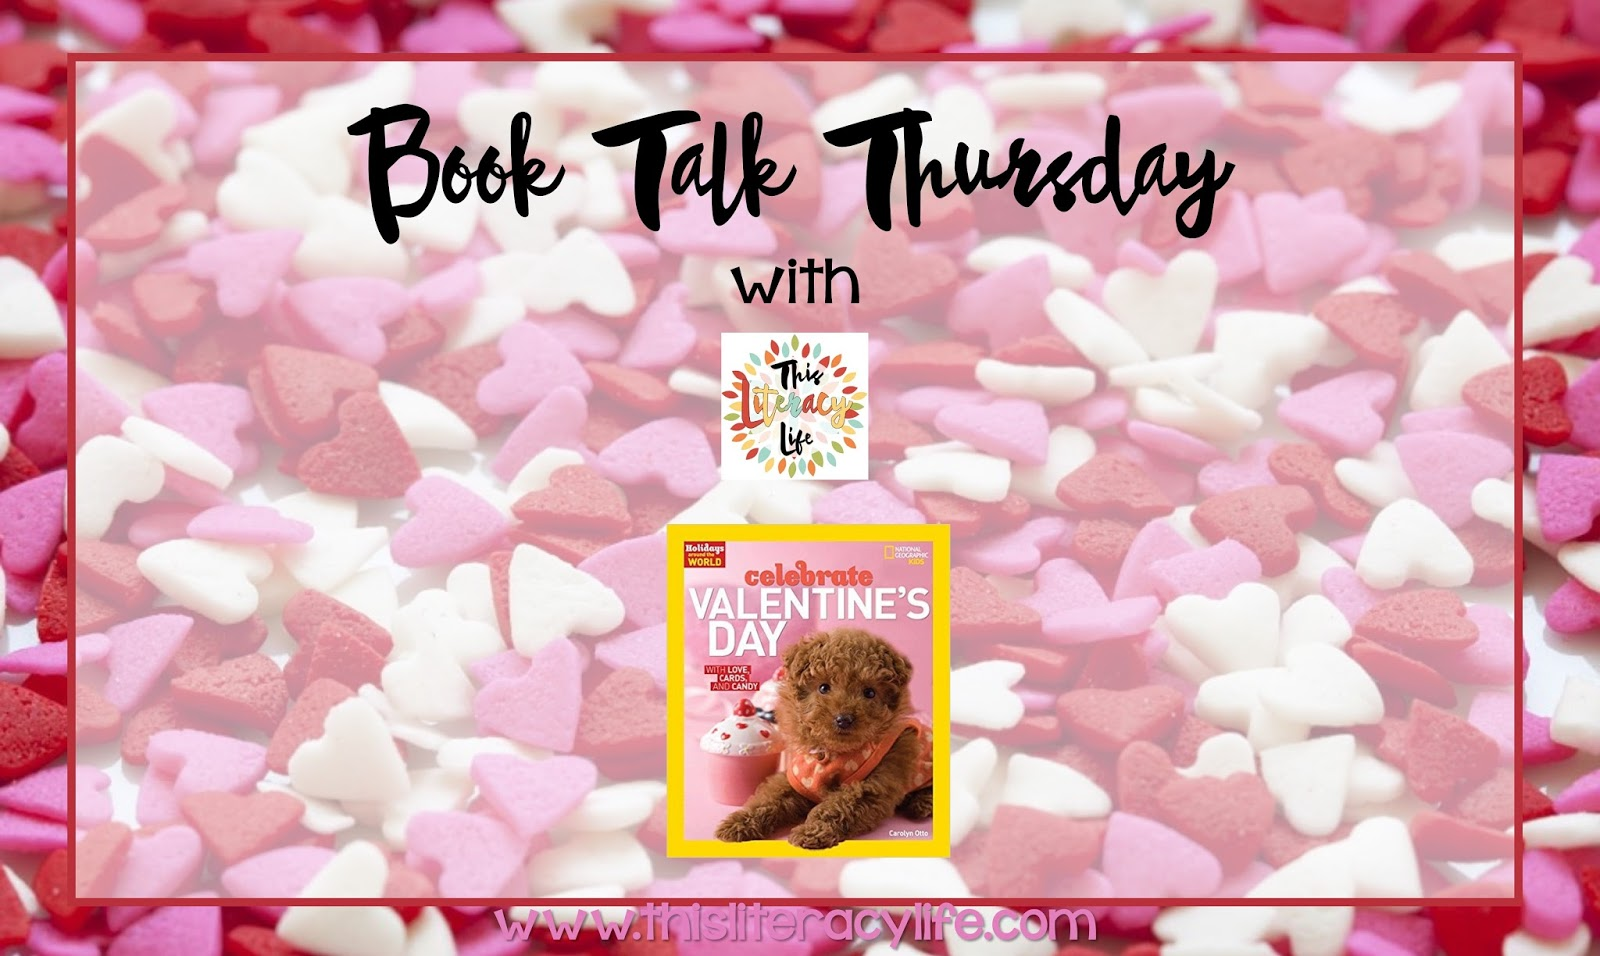 Valentine's Day is right around the corner, and there are so many things kids can learn about this fun holiday in the book Celebrate Valentine's Day.